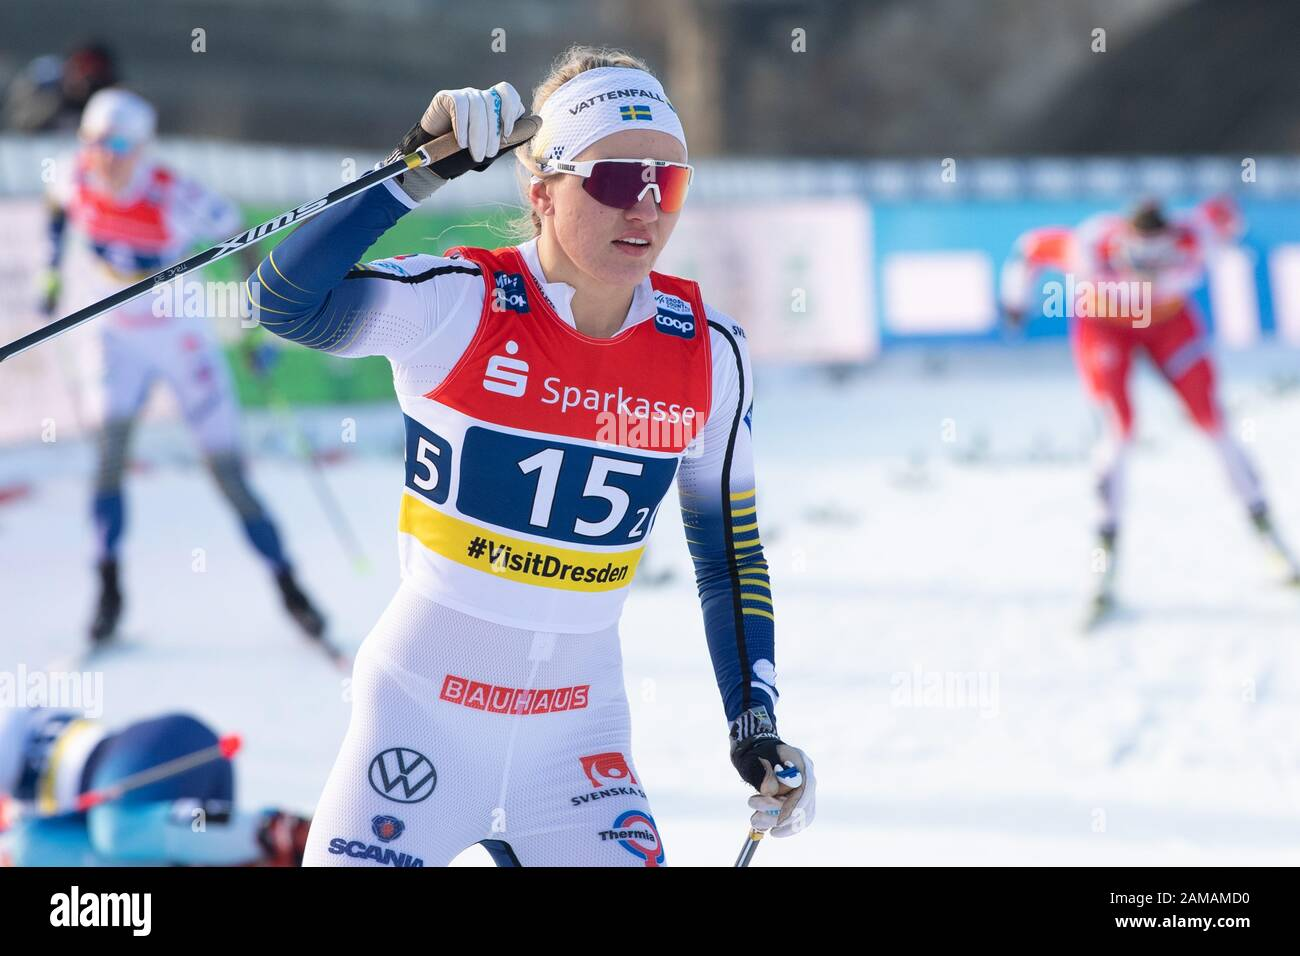 Dresden Germany 12th Jan 2020 Cross Country World Cup Team Sprint Freestyle Final Women Linn Svahn From Sweden Reacts At The Finish Credit Sebastian Kahnert Dpa Zentralbild Dpa Alamy Live News Stock Photo Alamy